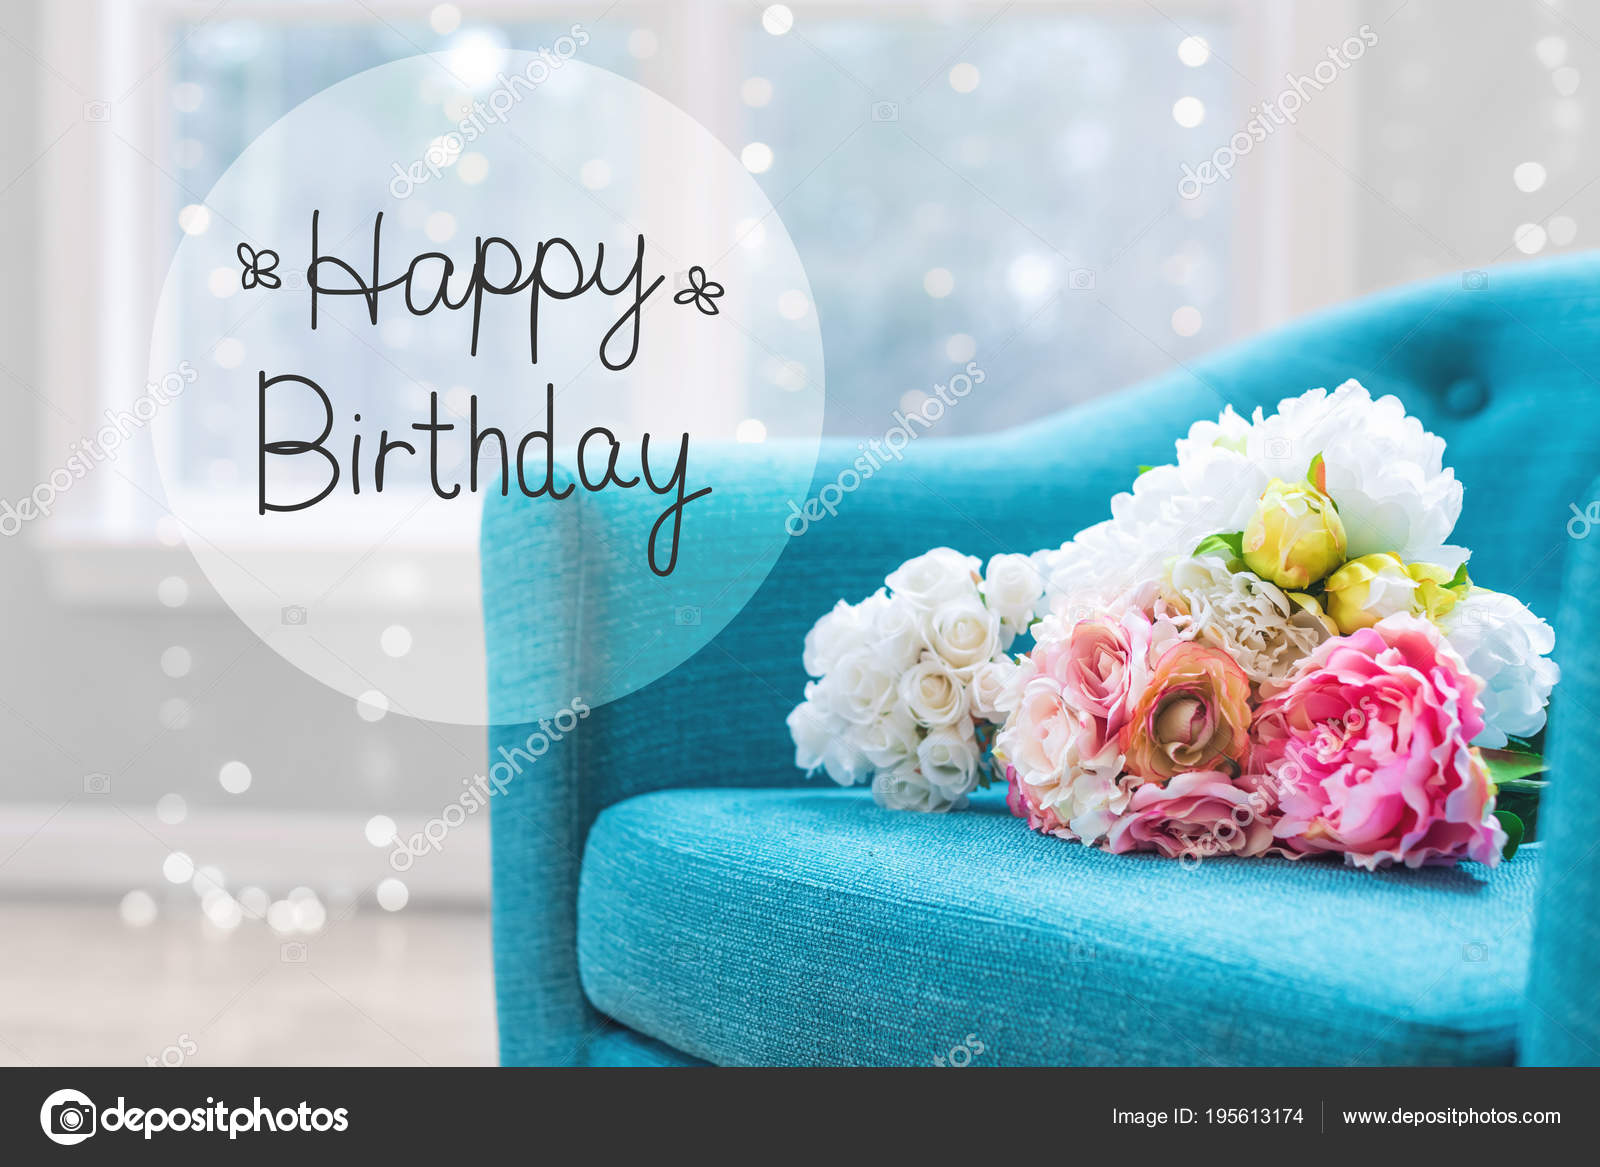 Birthday Message With Flower Bouquets With Chair Stock Photo